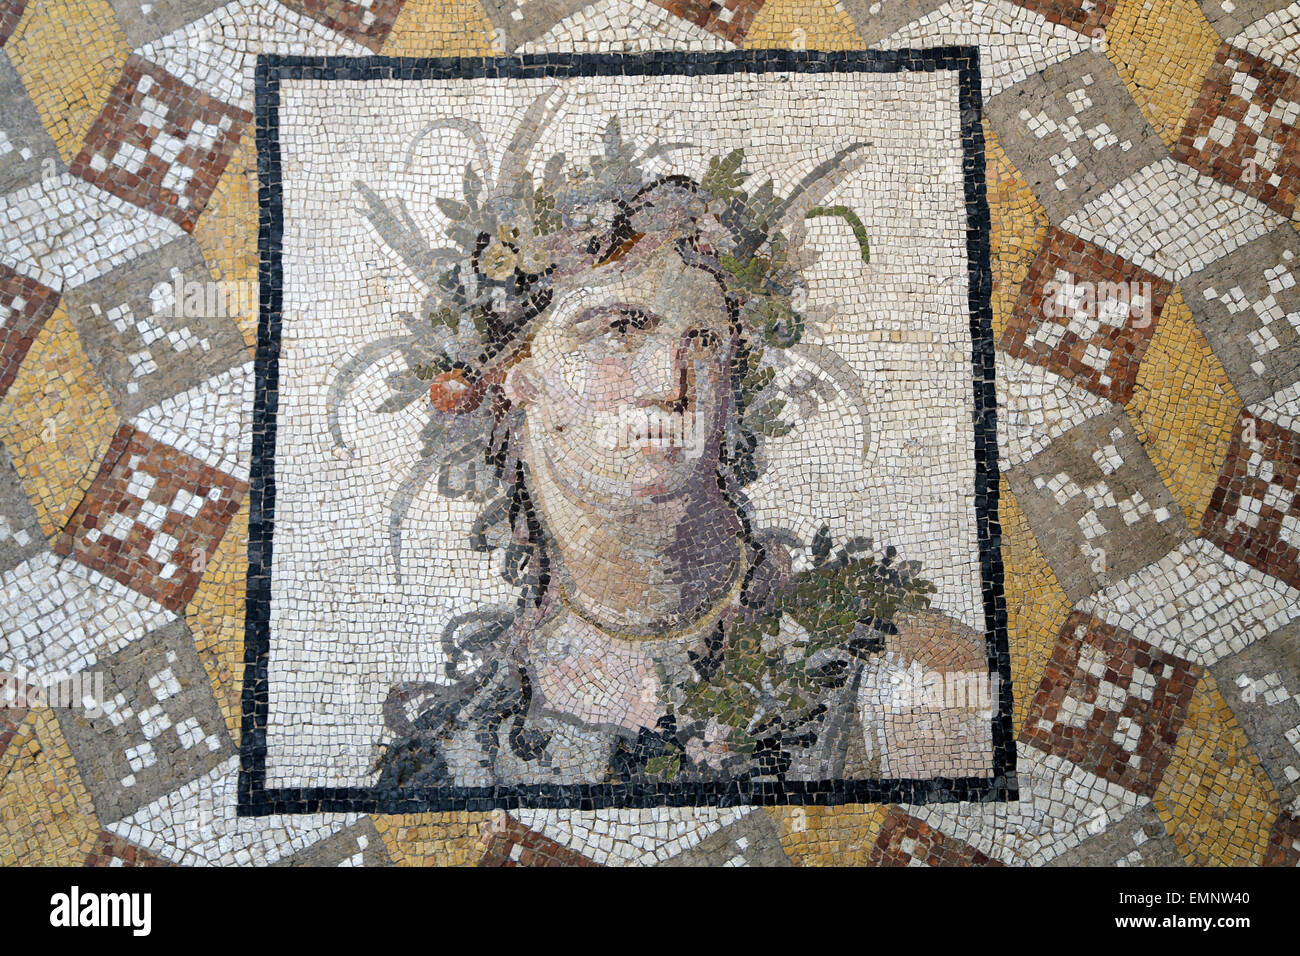 Mosaic floor panel. Roman, Imperial, 2ndc. AD. From Villa a Daphne near Antioch (modern Antakya, Turkey). Detail - Stock Image